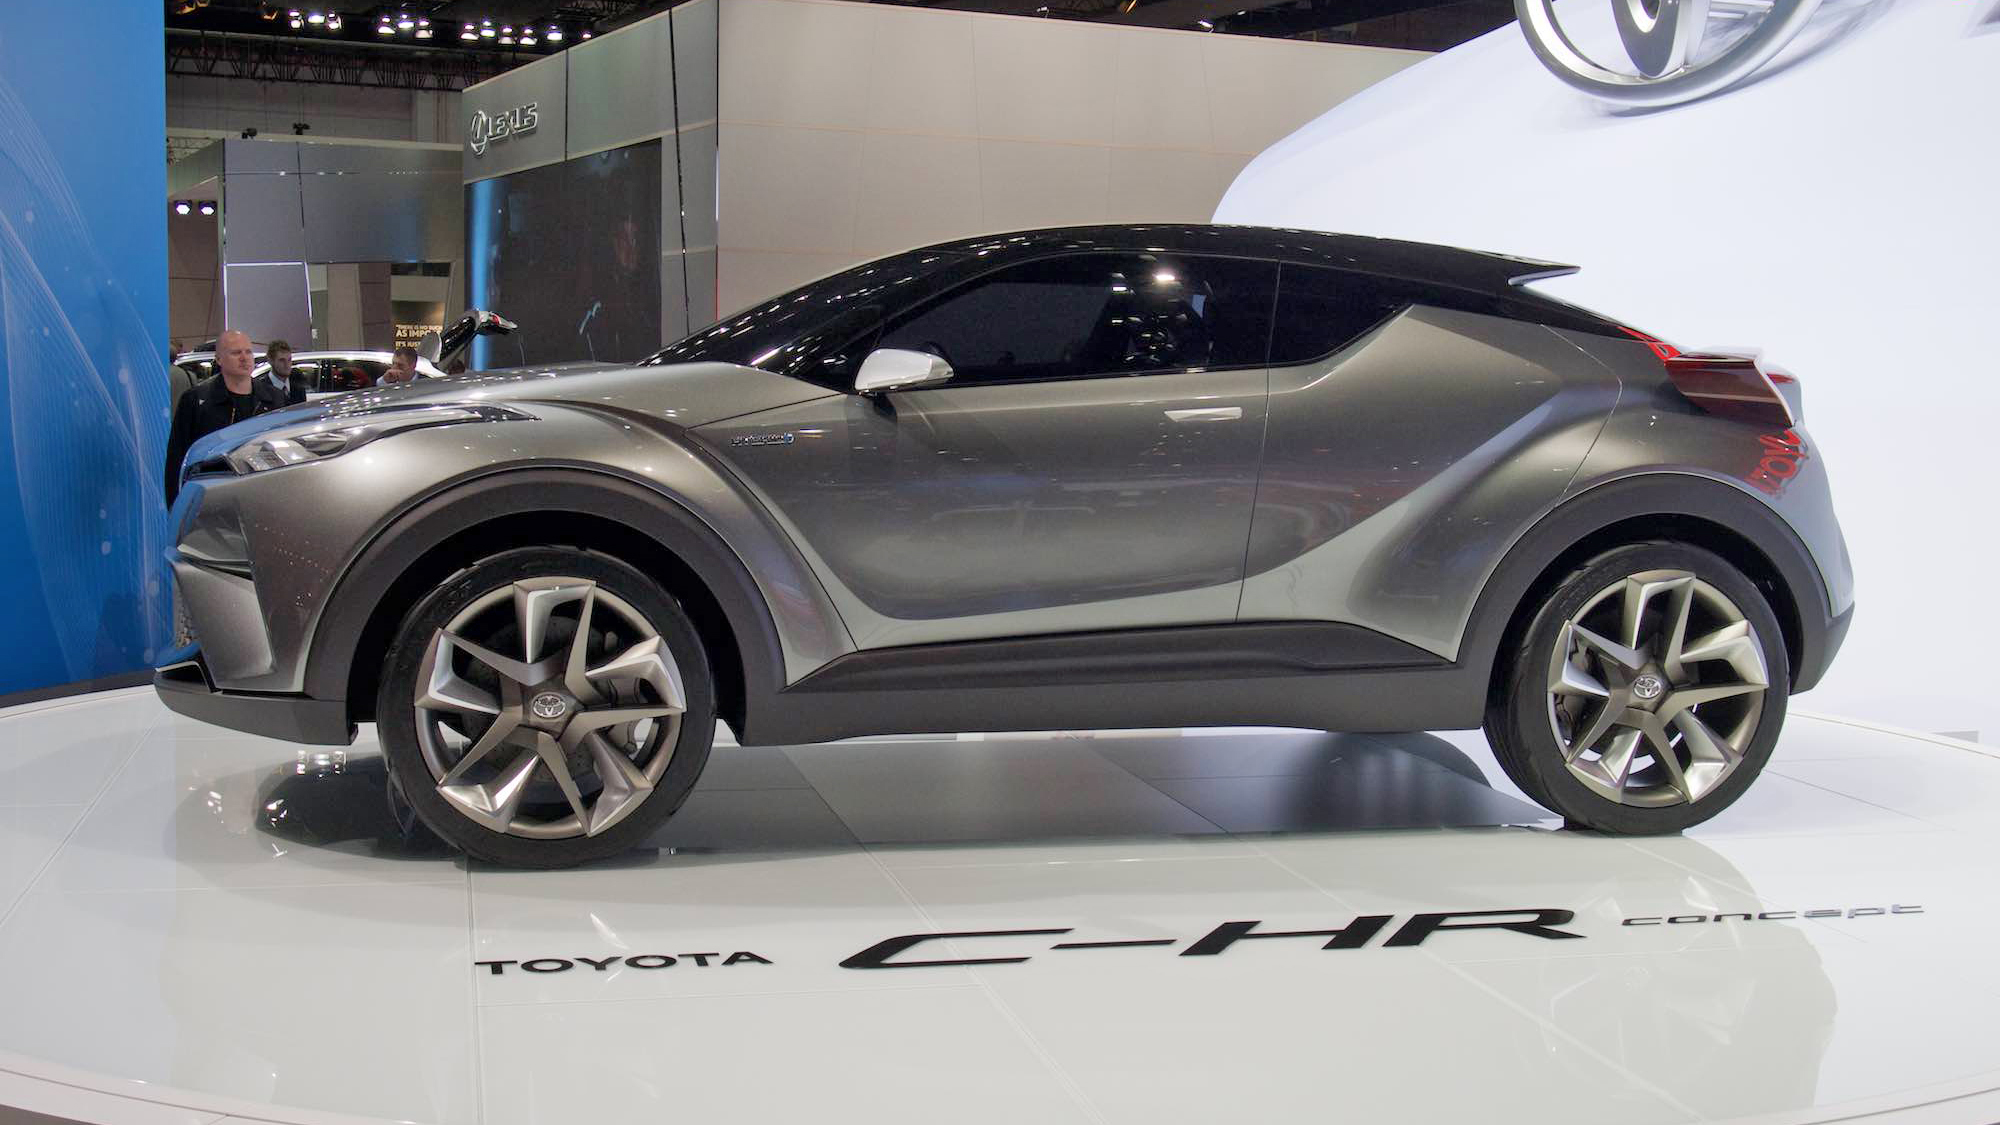 CH-R, C-HR, a flying car (!) and more… new Toyota U.S. trademarks and patents